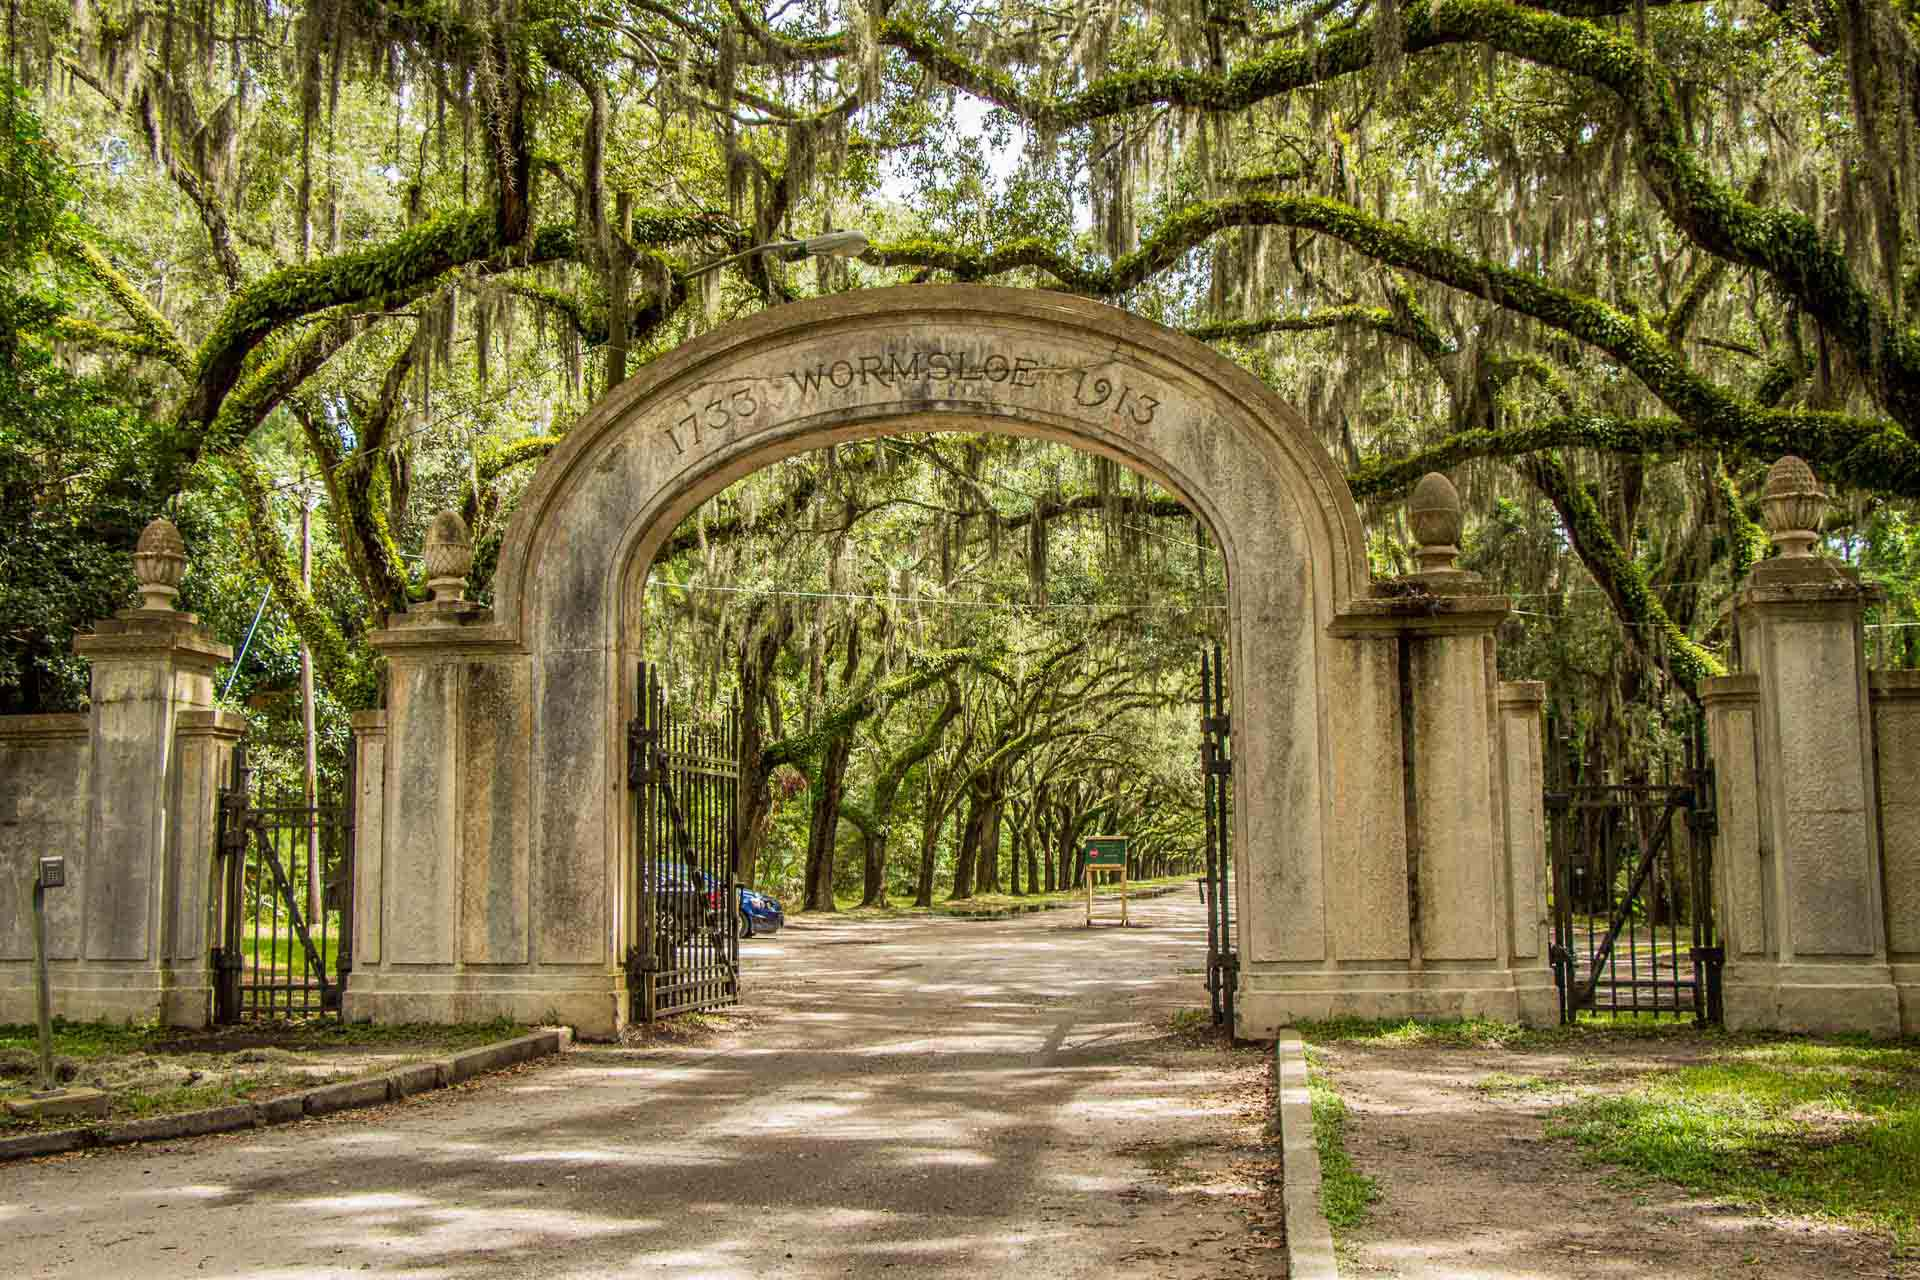 Family Can Travel - 2 Days in Savannah with Kids - Wormsloe Historic Site Entrance